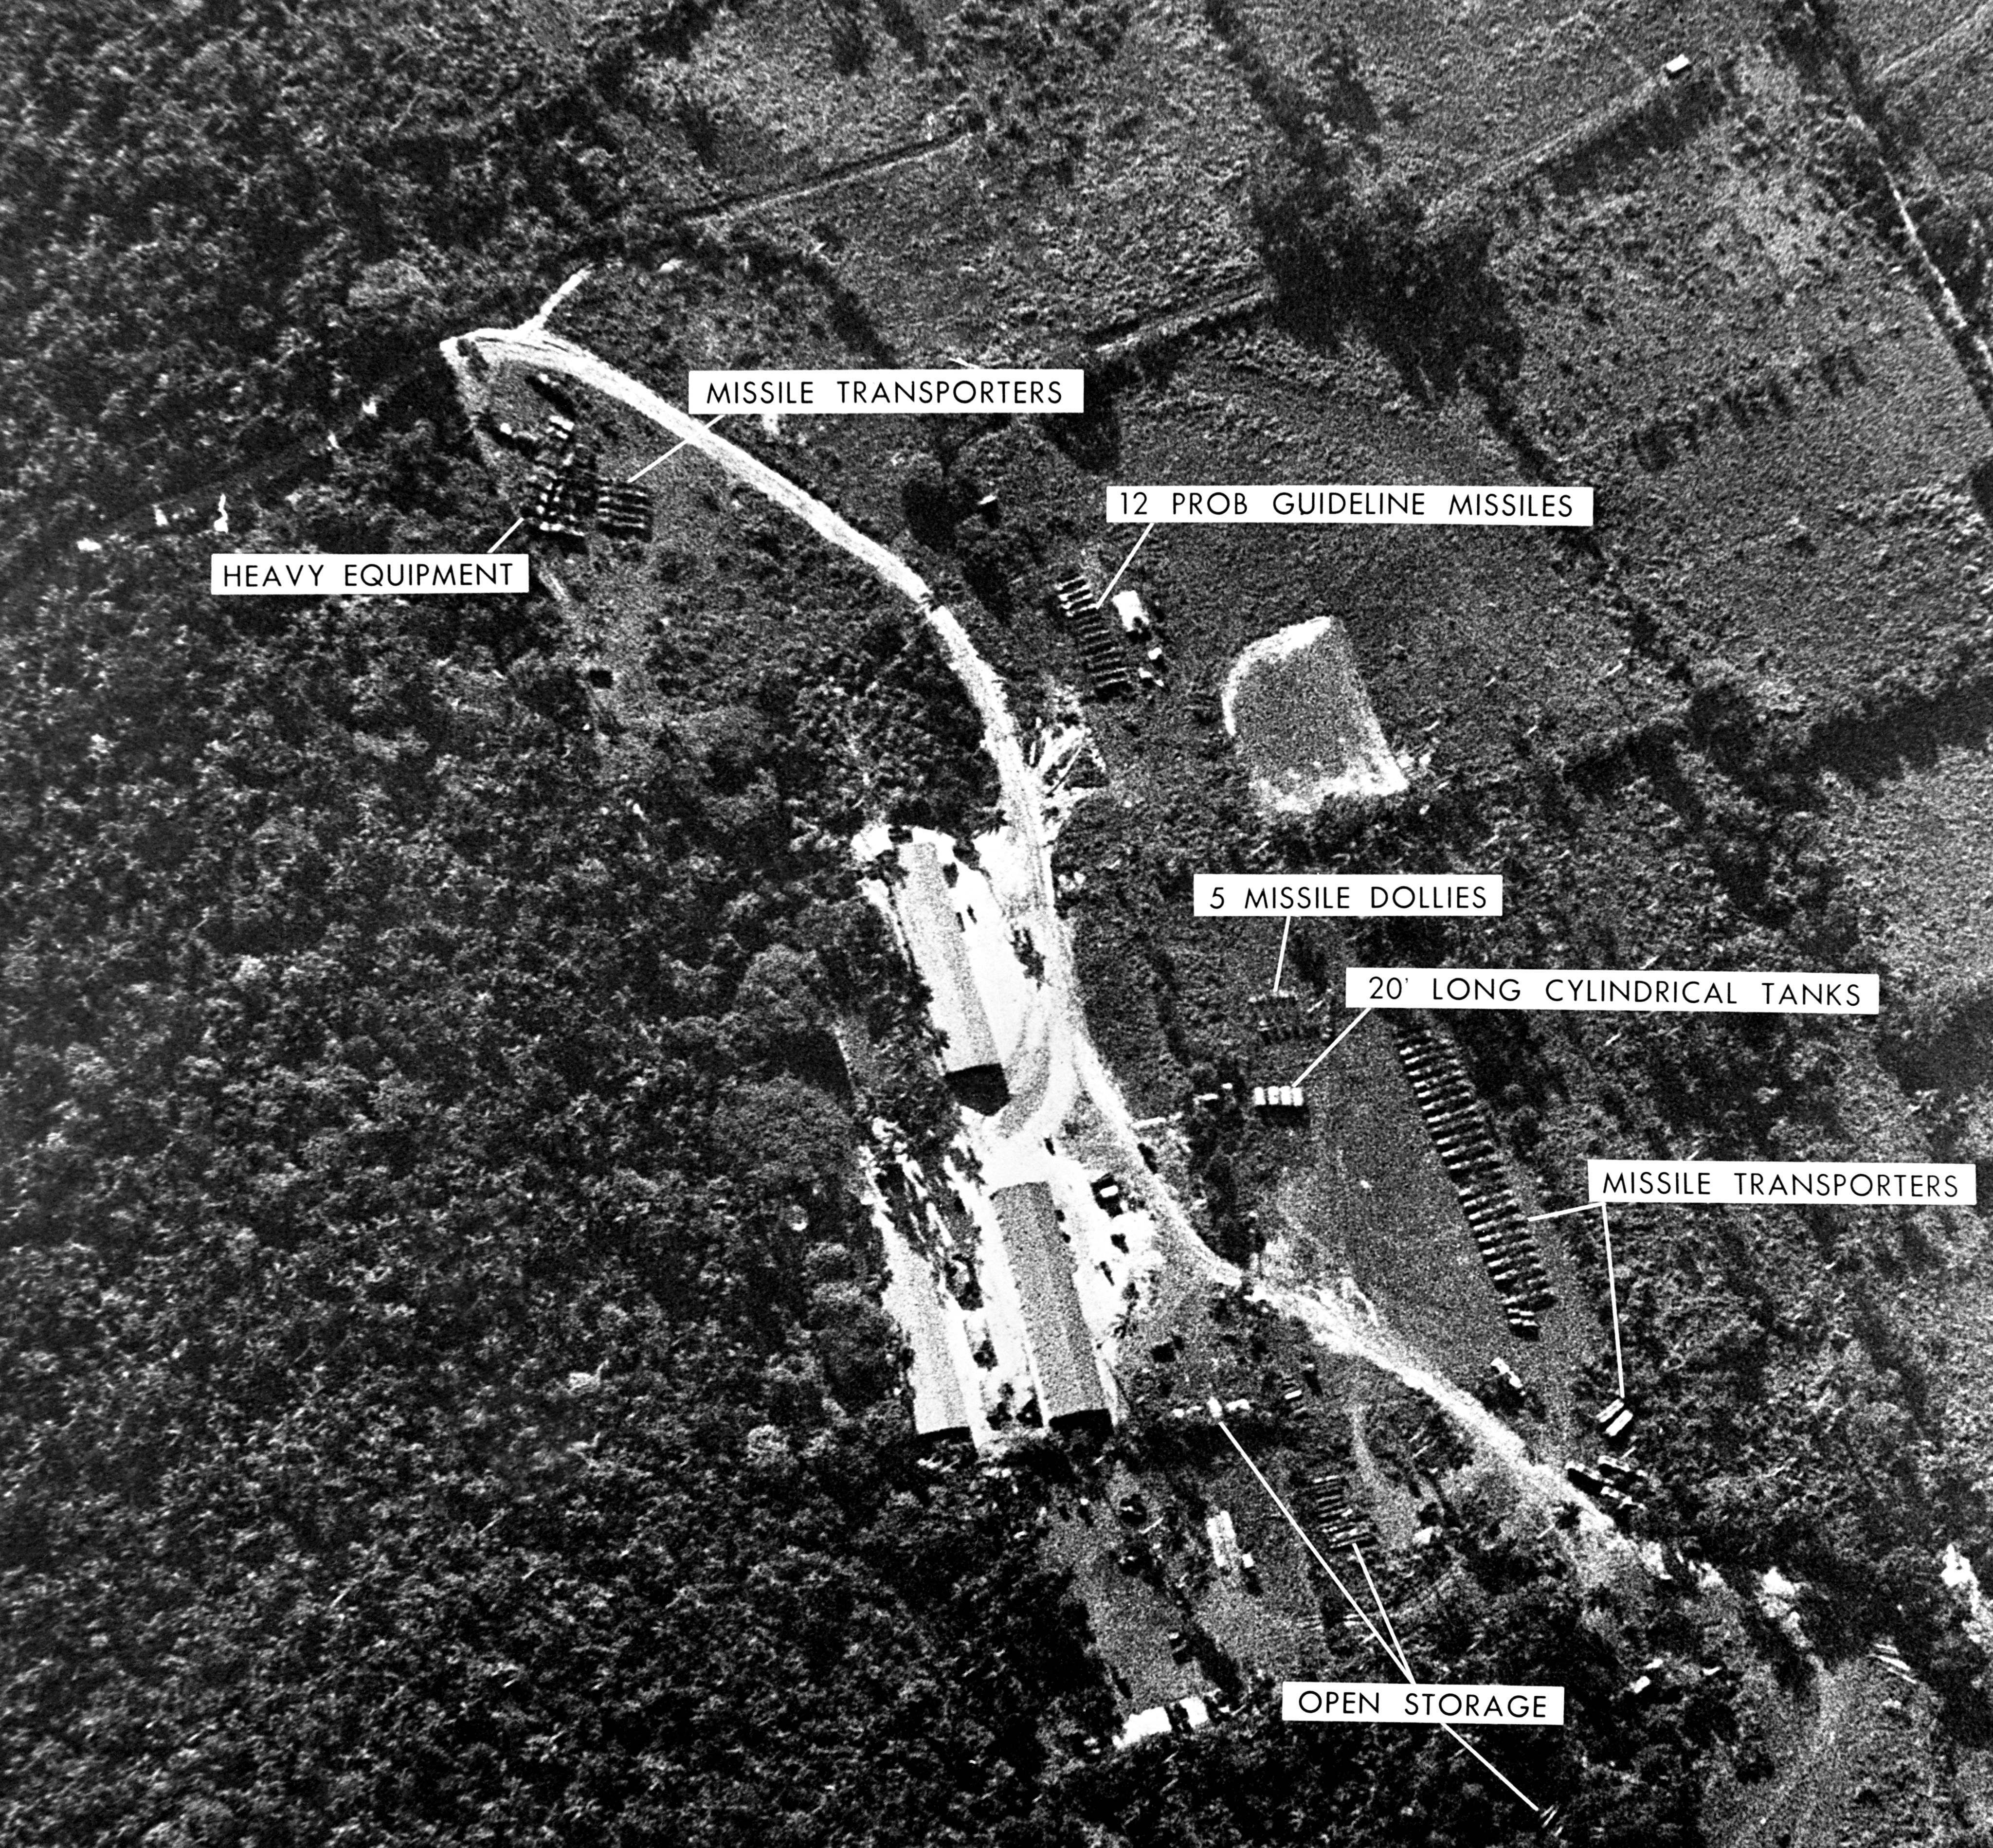 Politics - Cuban Missile Crisis - US Embassy releases Images